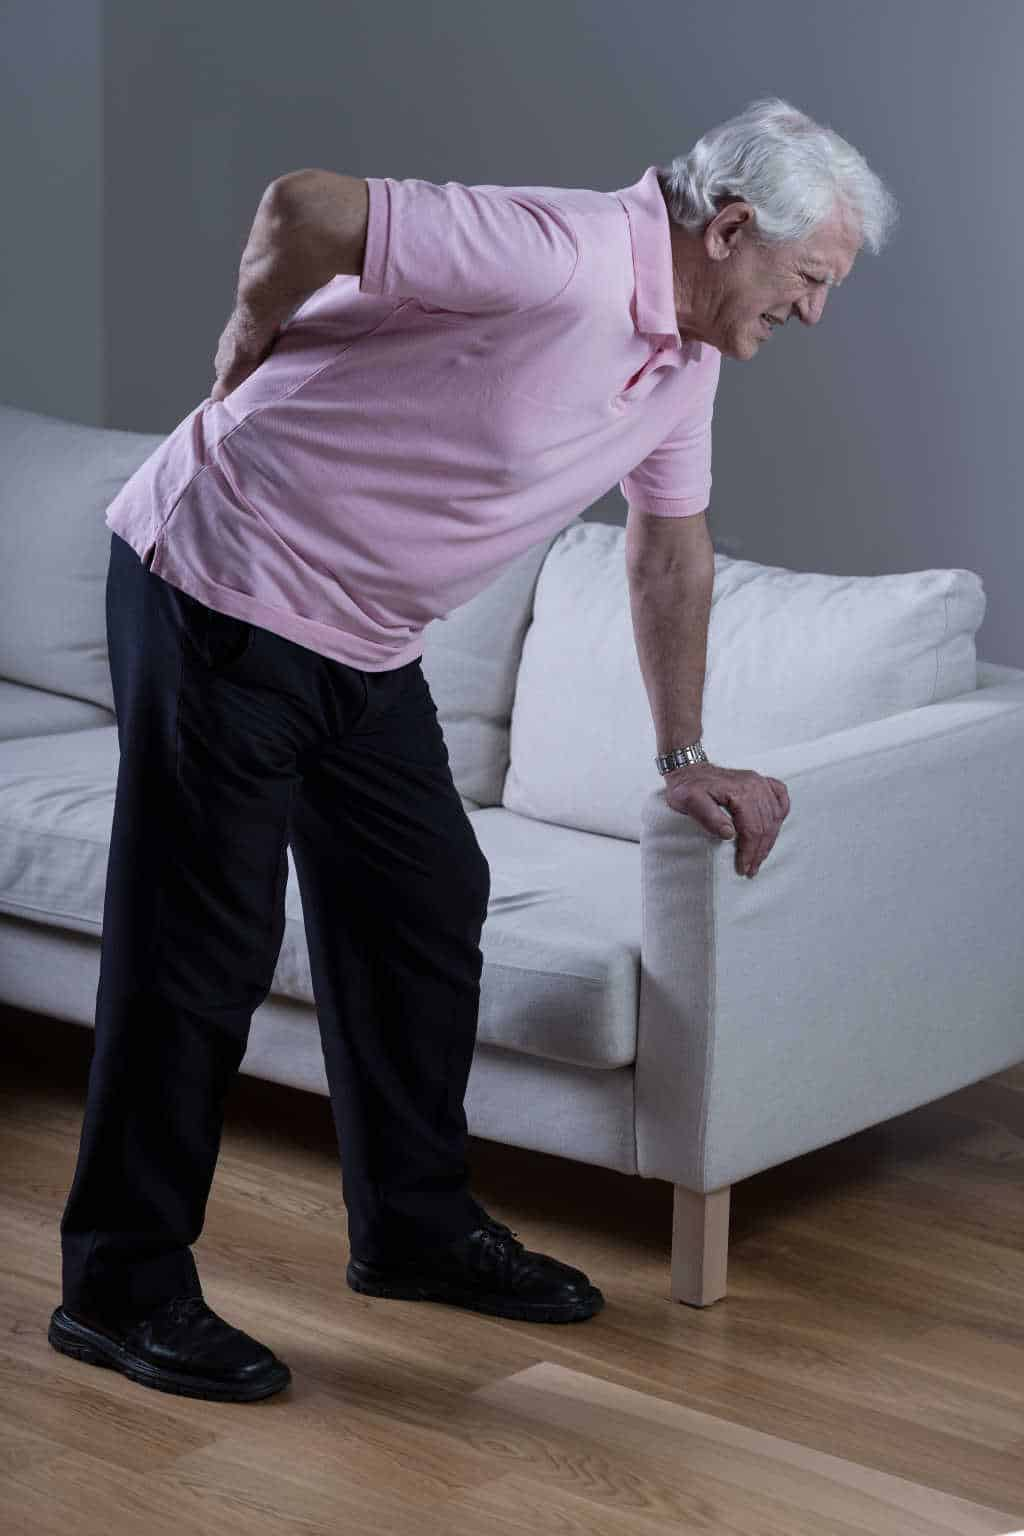 Having back pain due to old age? Can you fix your back pain no matter what your age is?